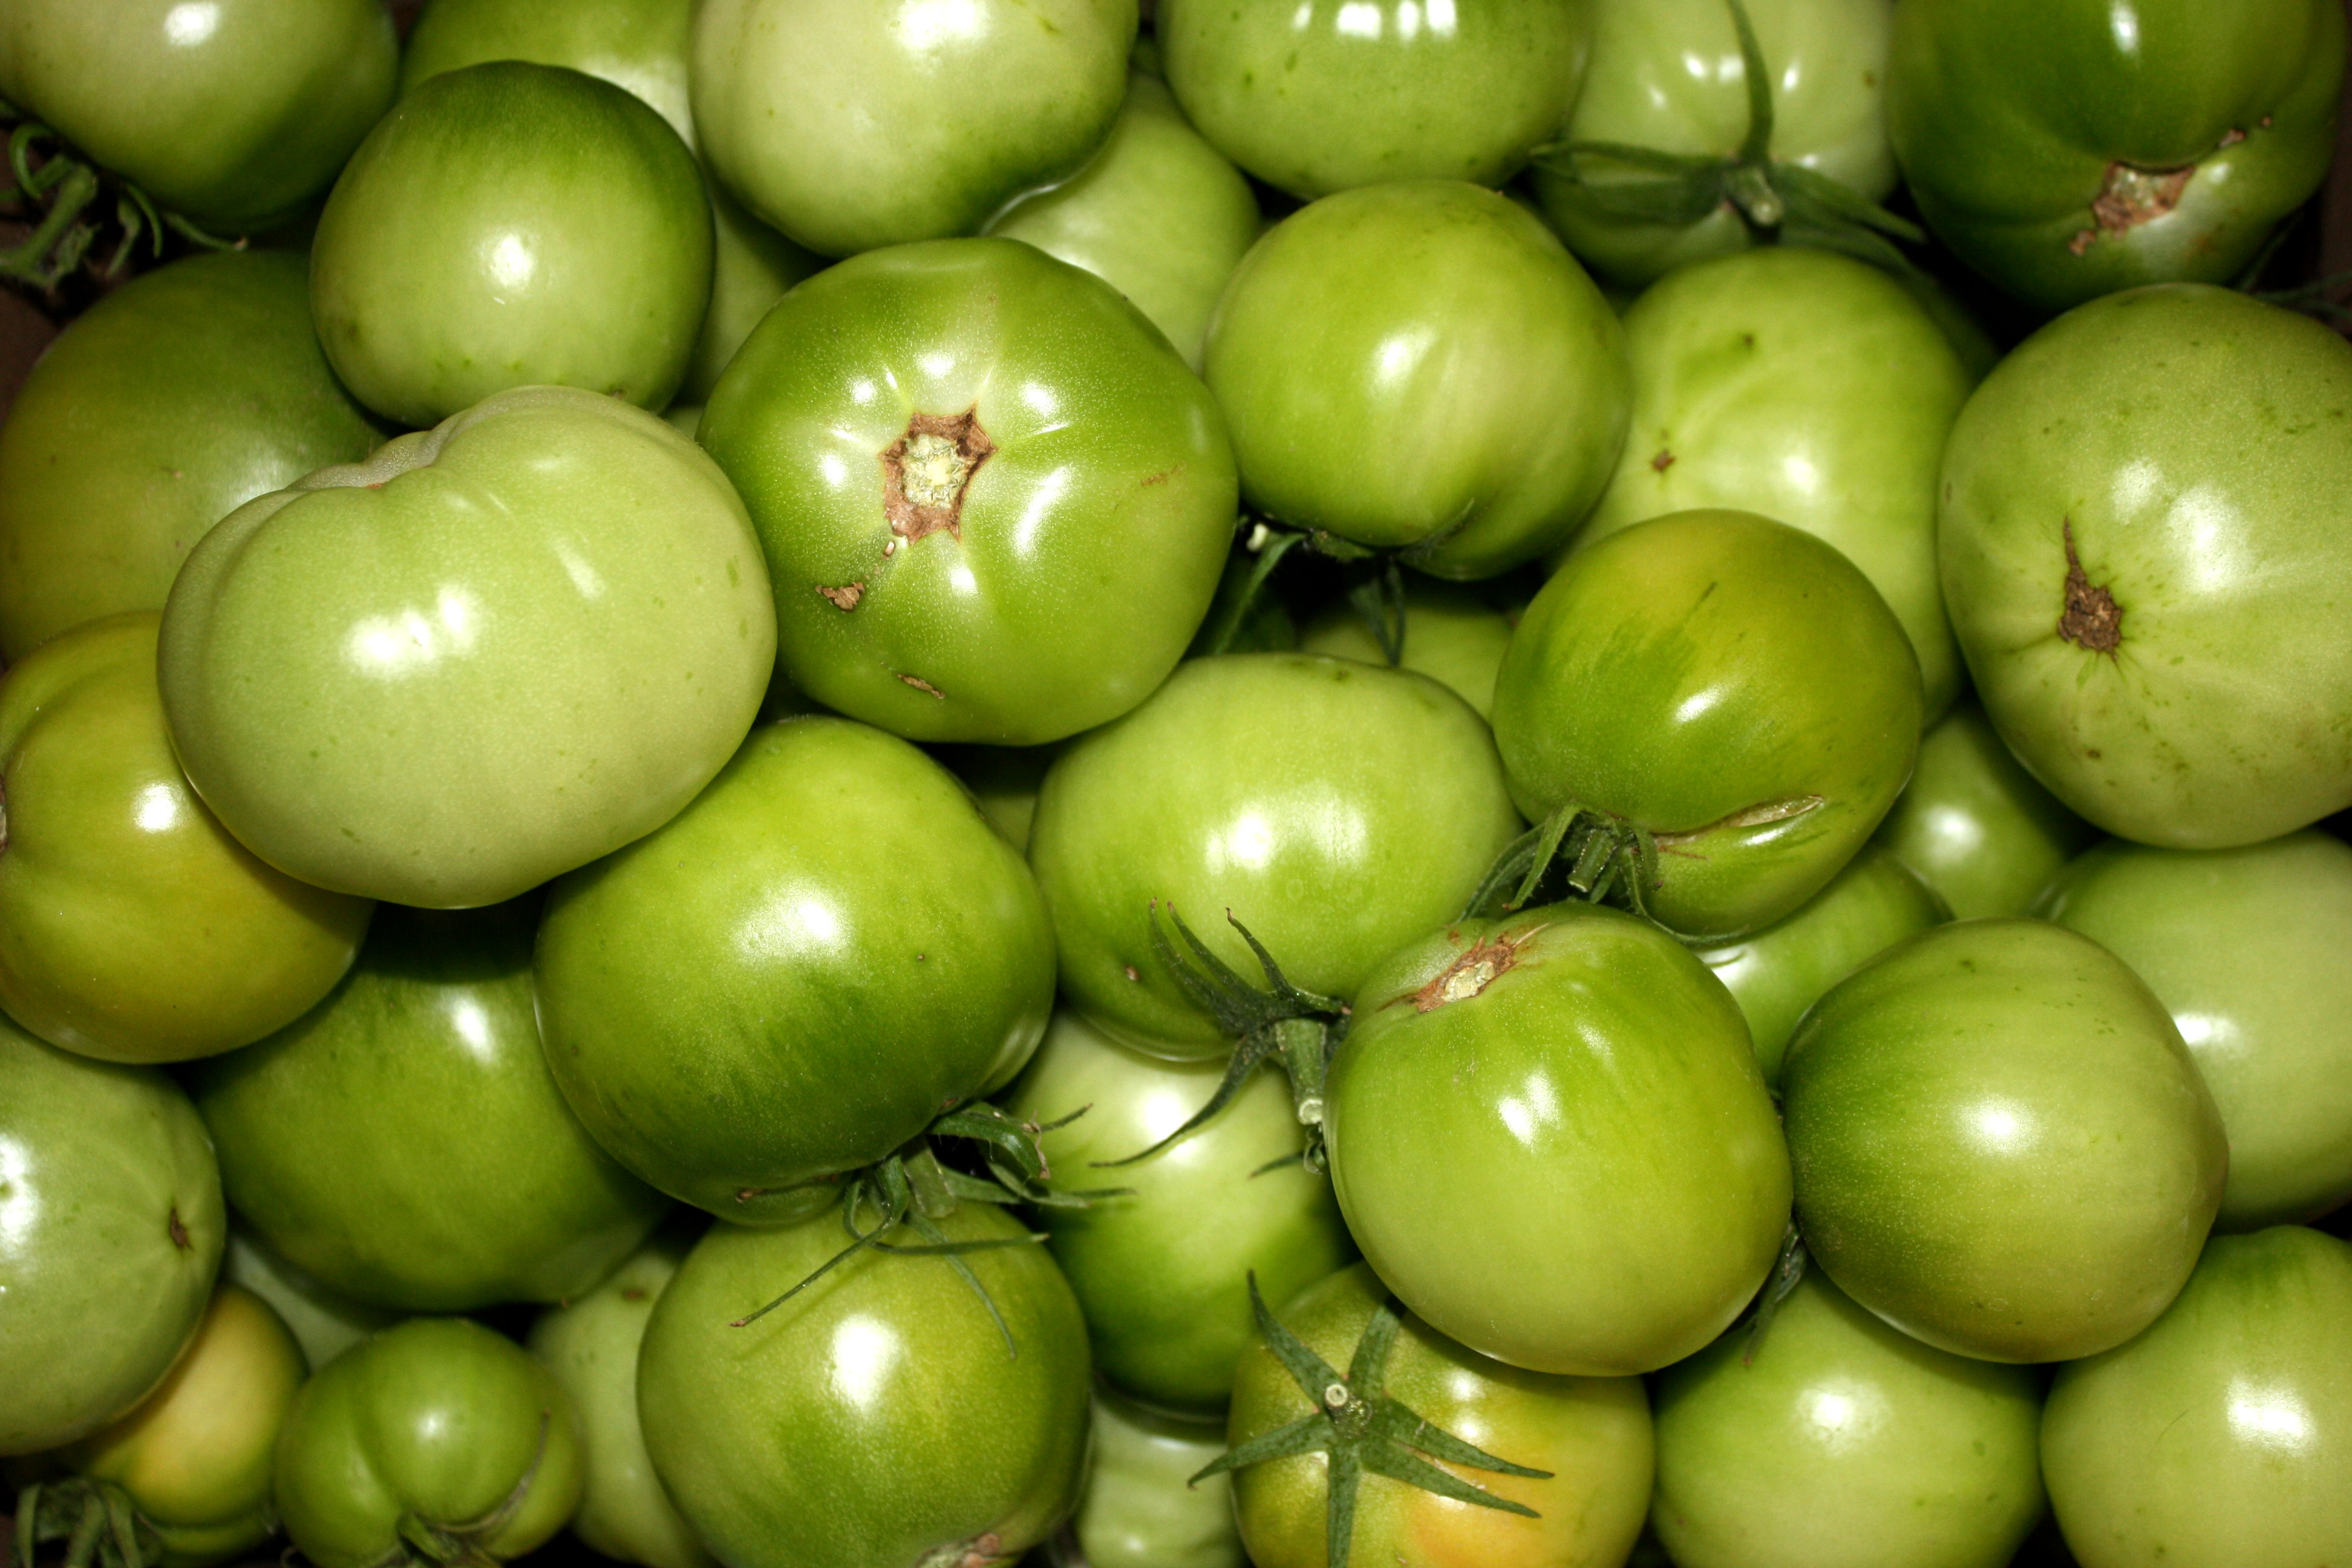 Green Tomatoes Picture Free Photograph Photos Public